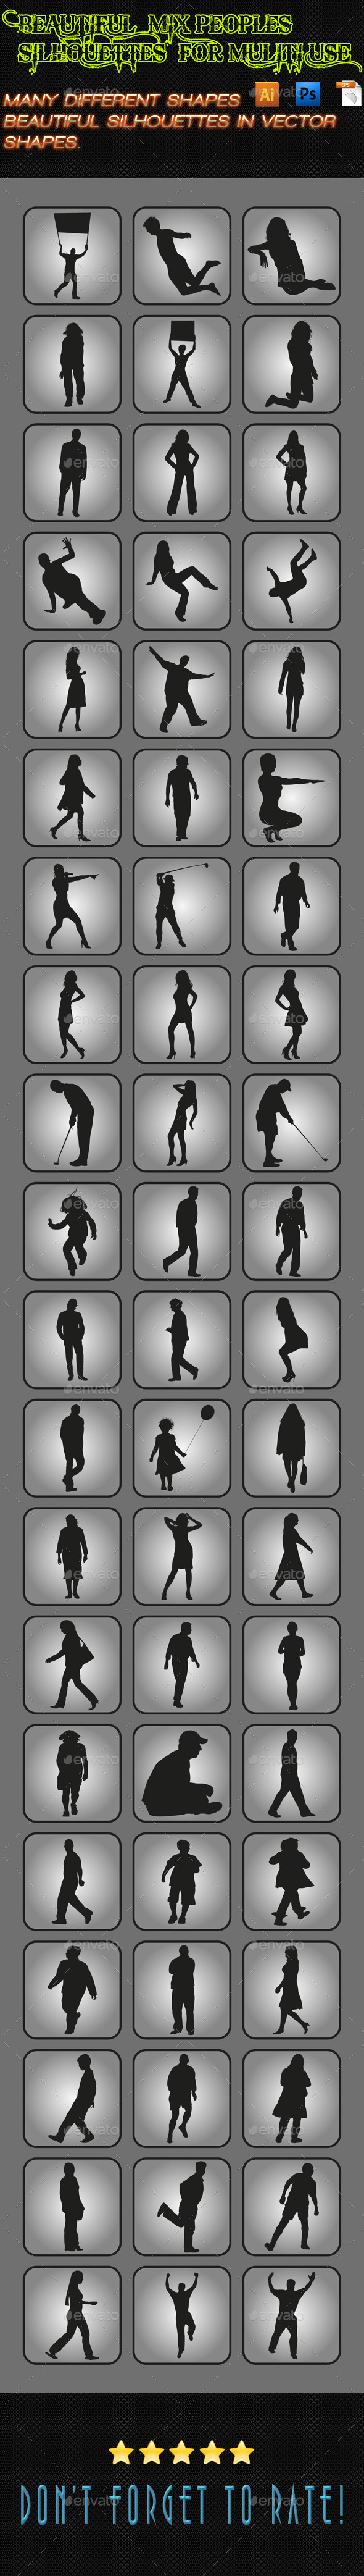 Mix Peoples Silhouettes 04 - People Characters